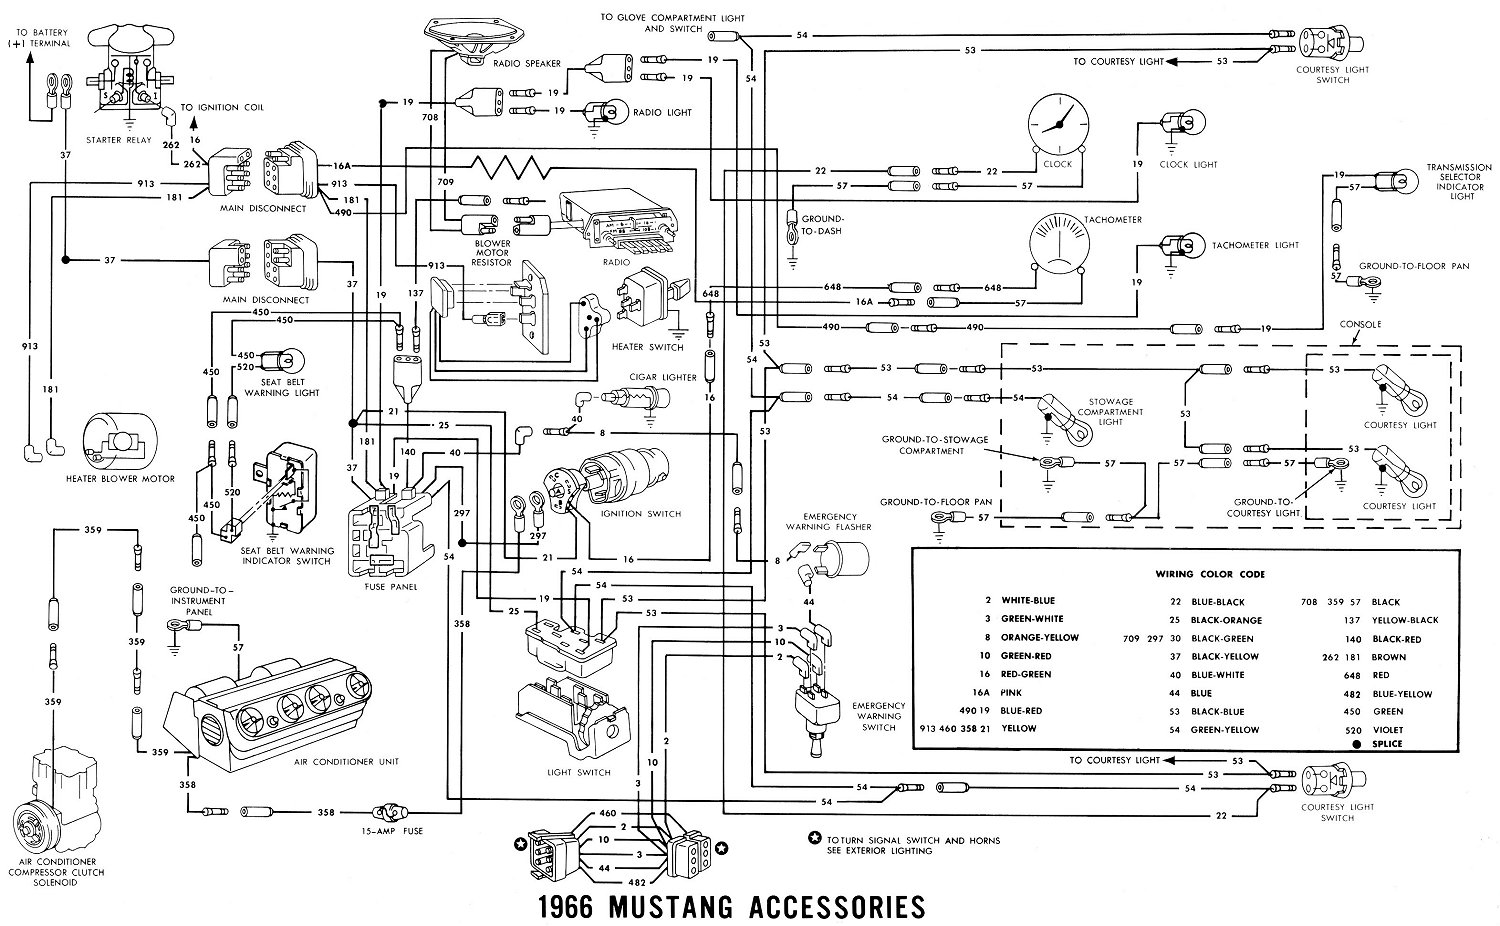 wiring diagram for emergency lighting switch marine battery 2 www.claas-hoelscher.de